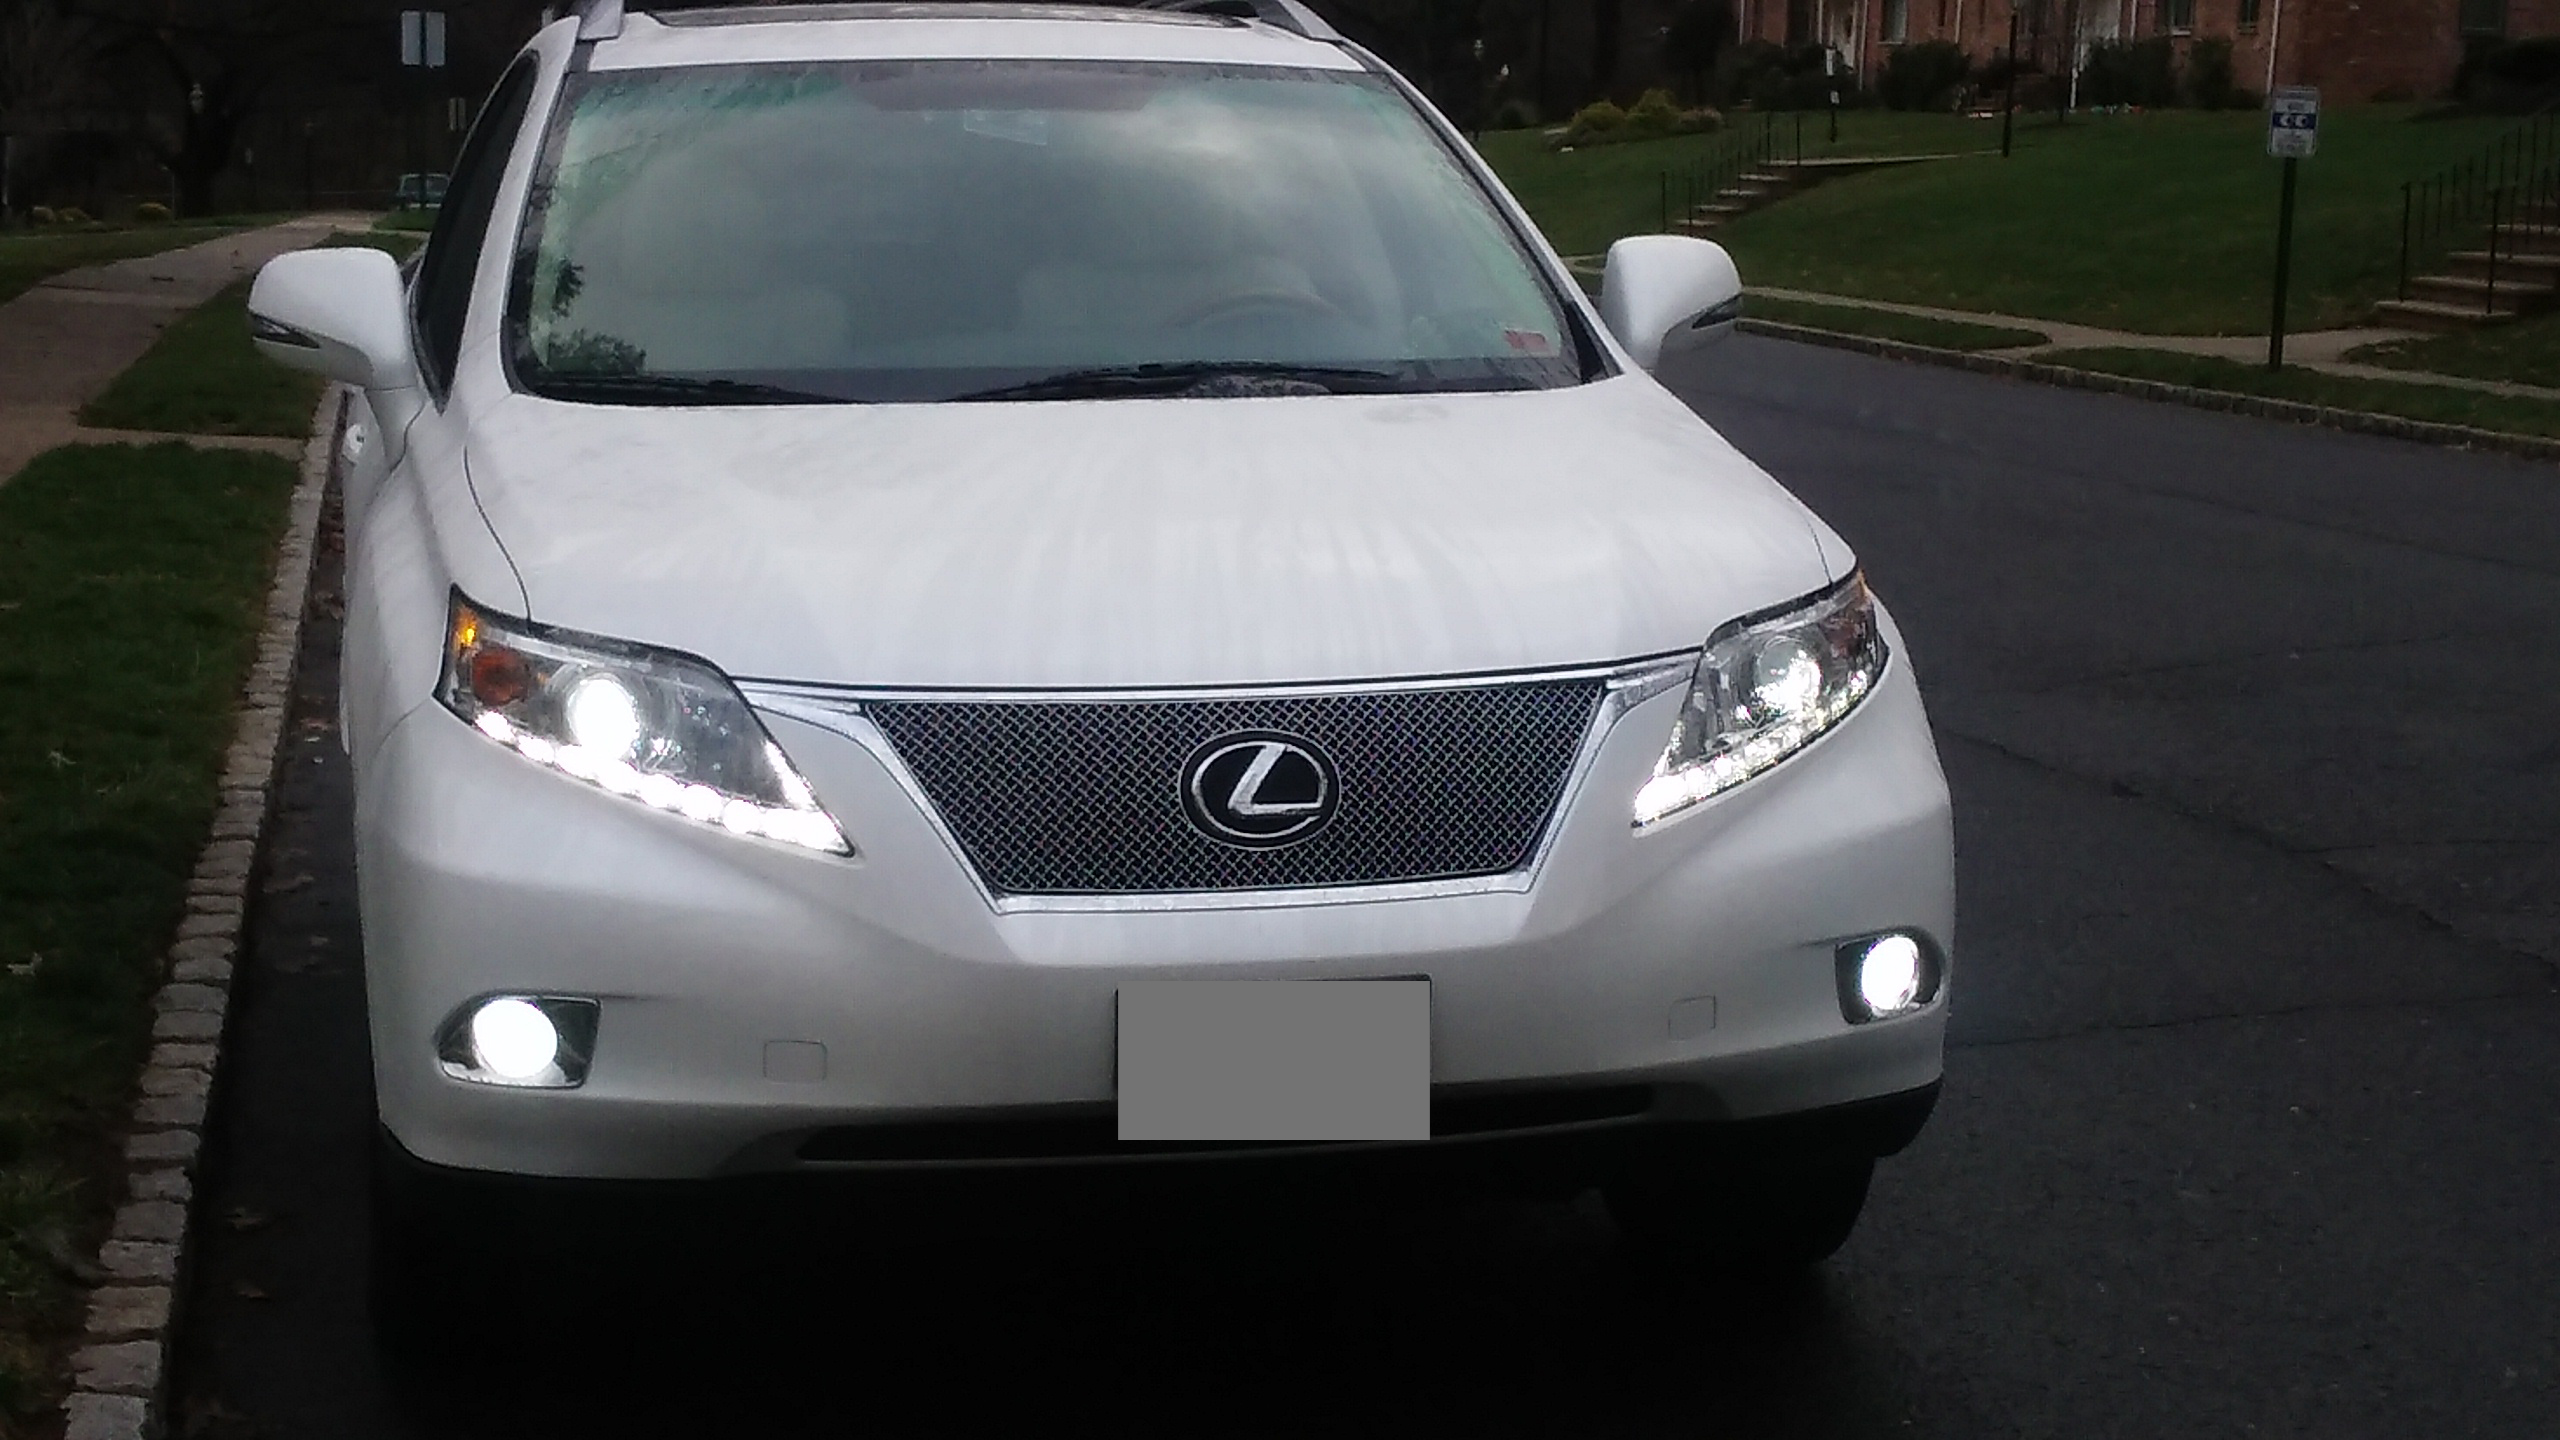 springs c suv stock rx for htm sale used co near colorado lexus